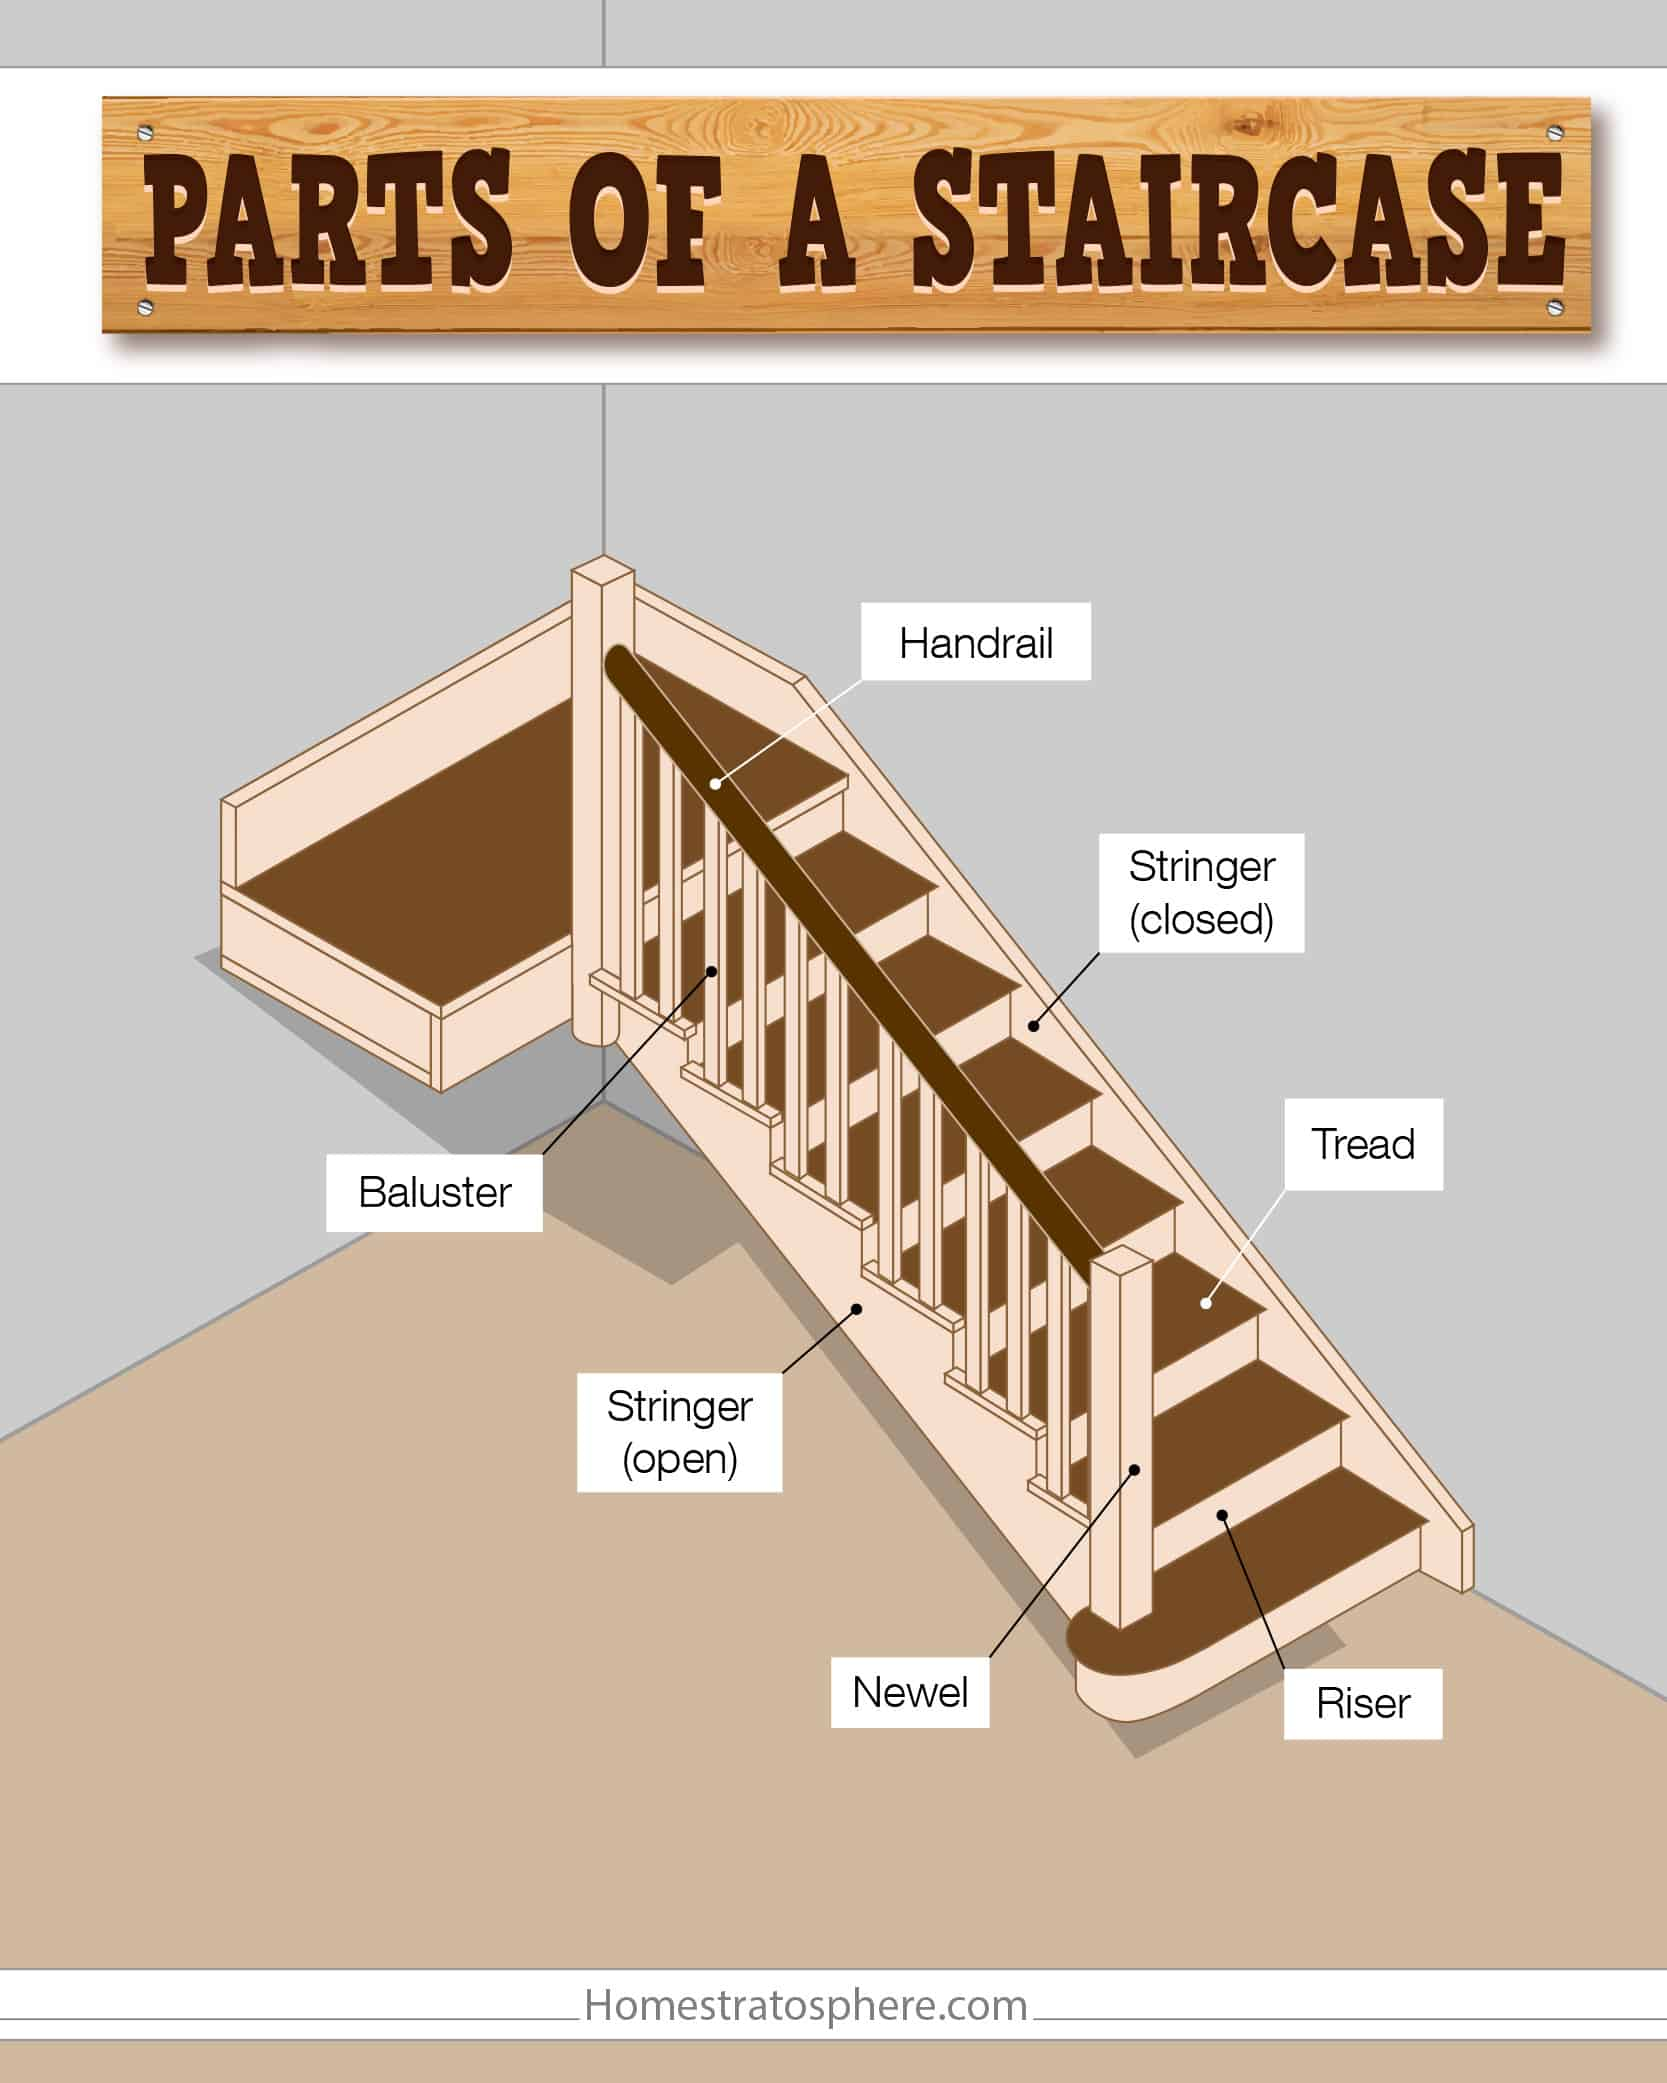 Parts of a staircase illustrated chart